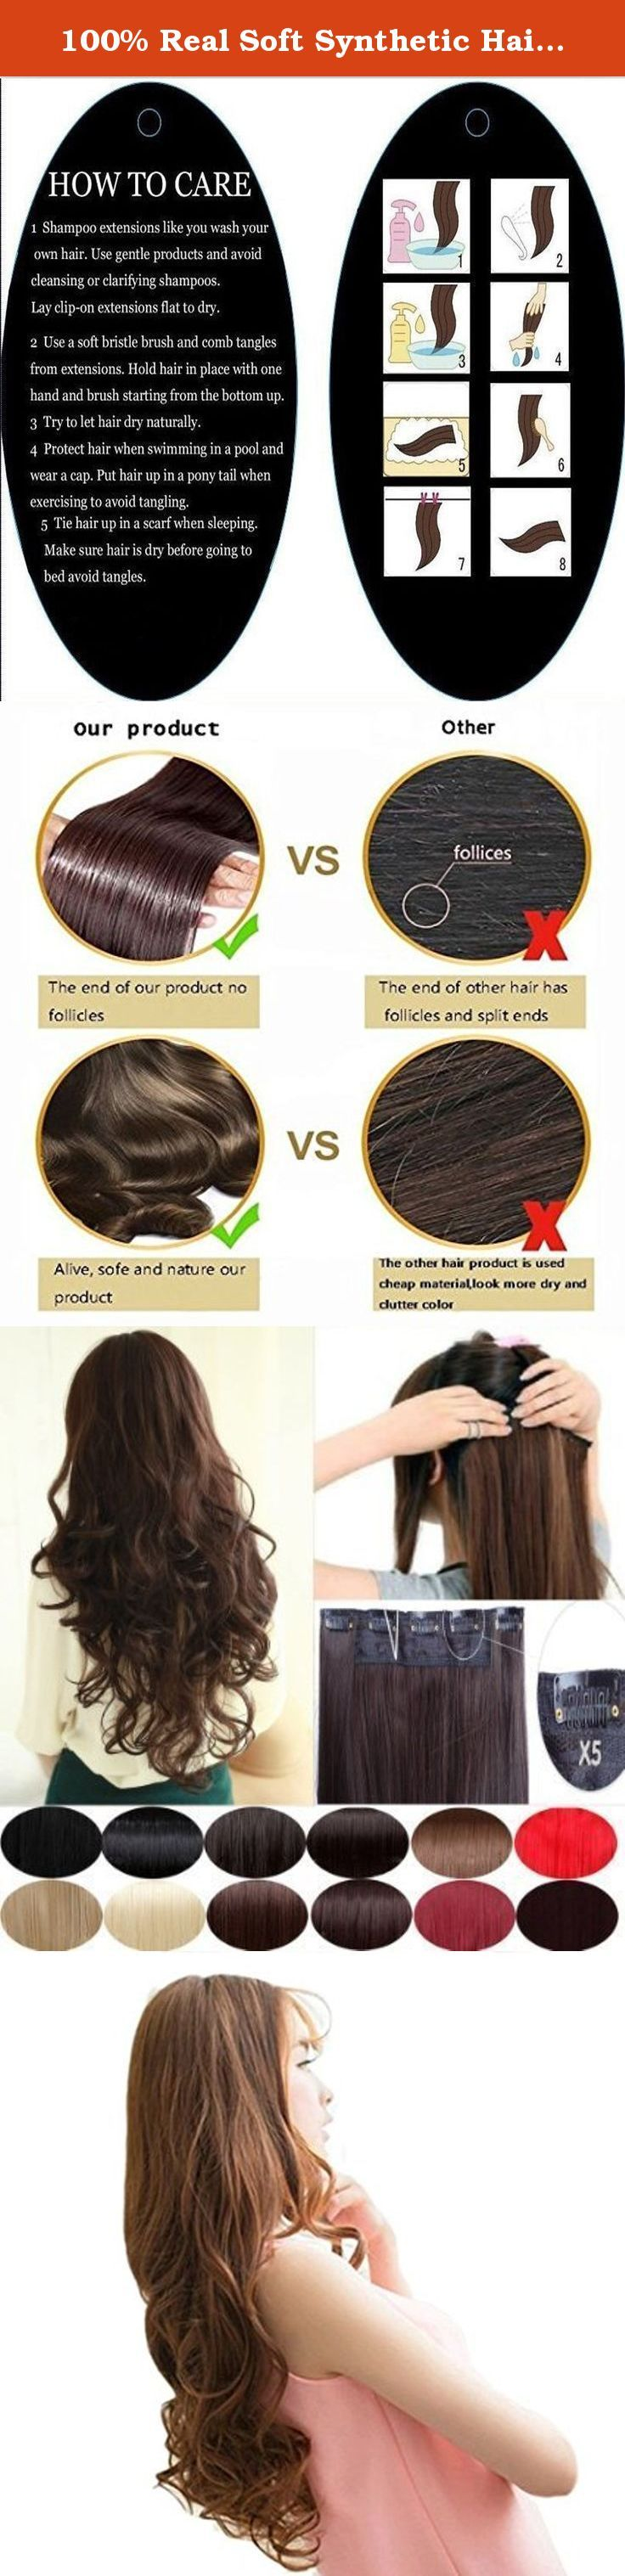 100% Real Soft Synthetic Hairpieces 24inch(61cm) long wavy curly natural black to dark blonde hair 1Pc with 5Clips Half Full Head Clip In Hair Extension for Elegant Lady. Synthetic fiber moves and feels like real human hair. This is Most affordable price and very easy to apply. Several pressure sensitive clips make attaching quick and easy. The best hair extension shopping options based on the price compare to real human hair extensions. Also the best choice for short term or entry level...